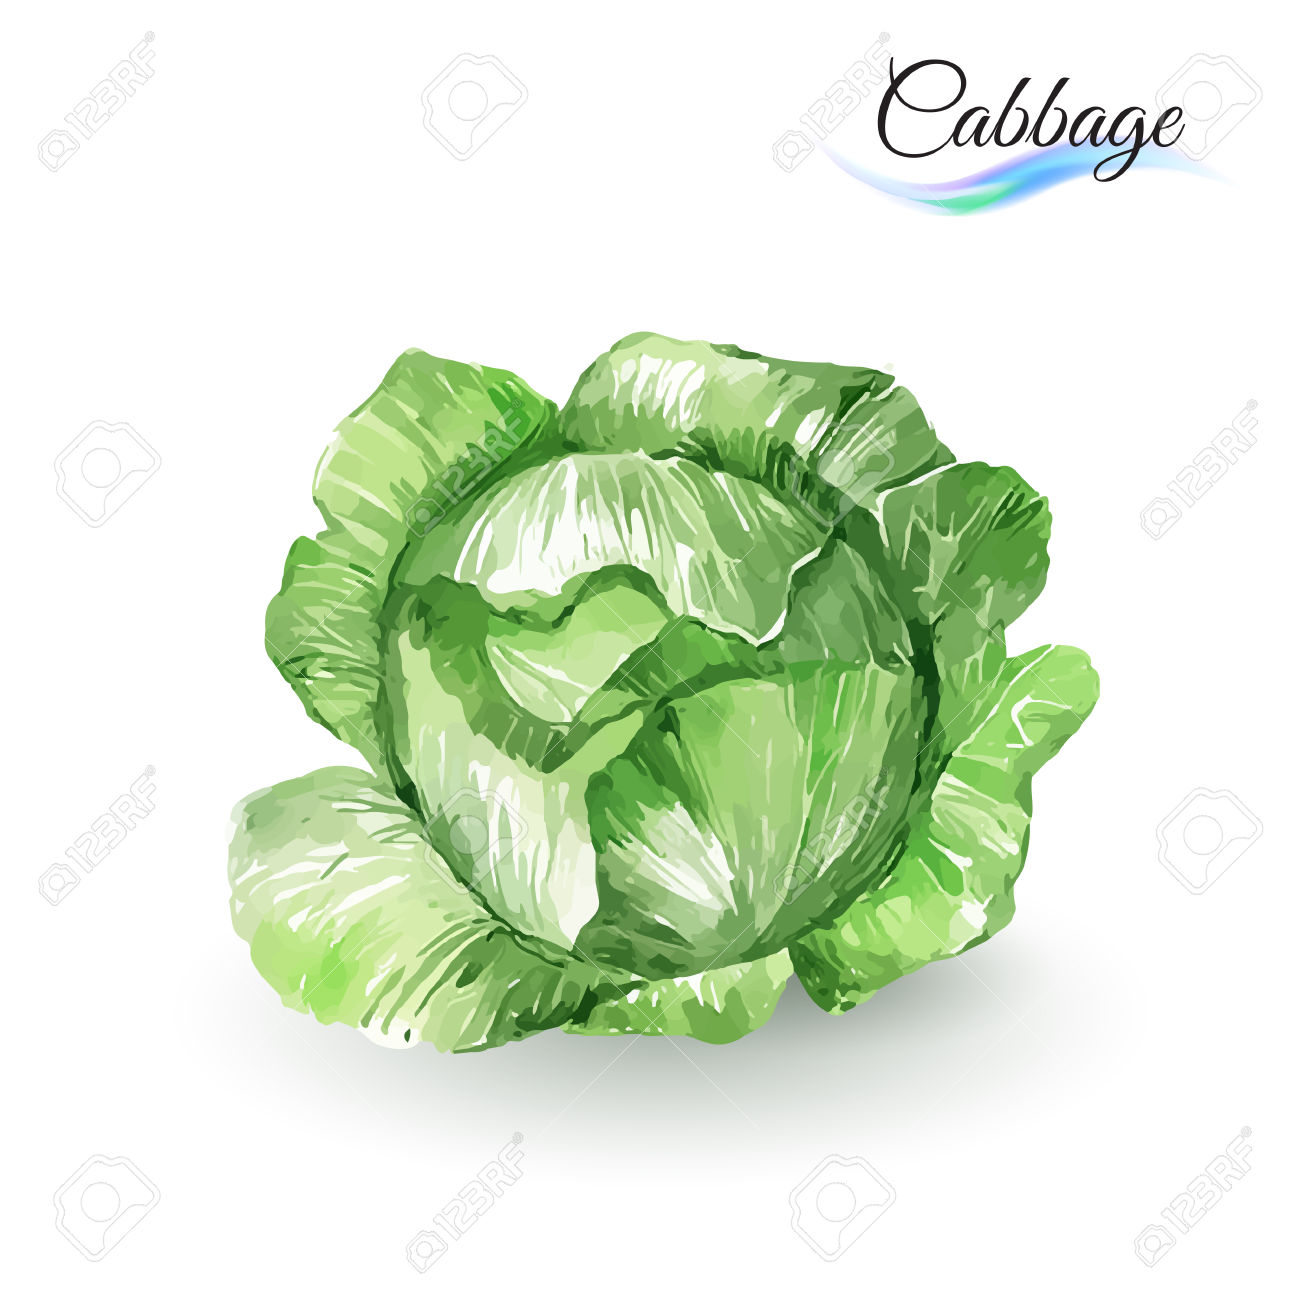 Ordinary rose clipground white. Cabbage clipart vector